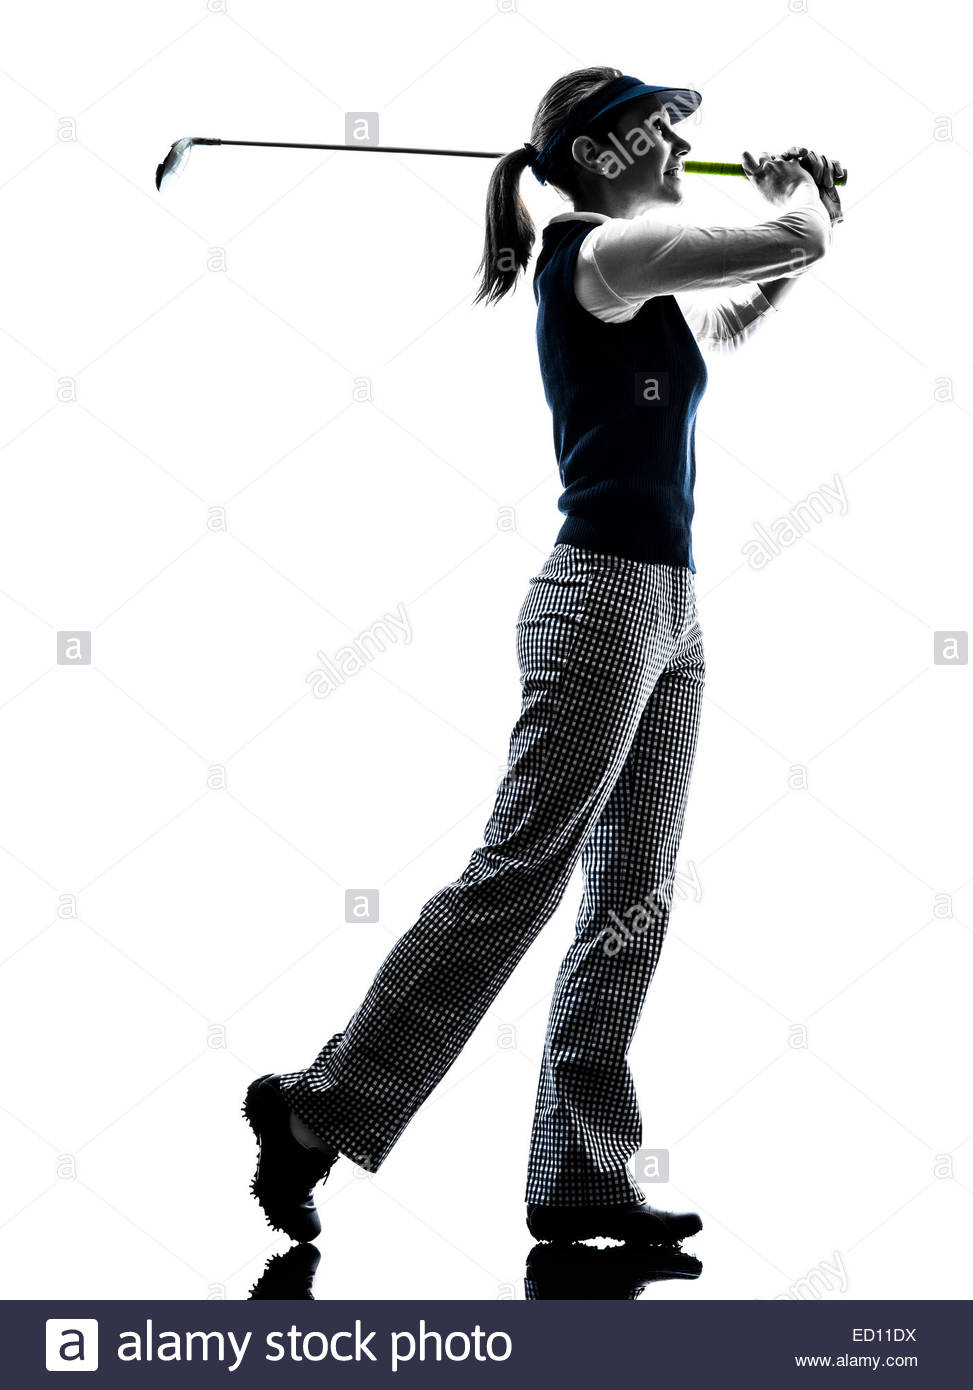 973x1390 Woman Golfer Golfing Silhouette In White Background Stock Photo